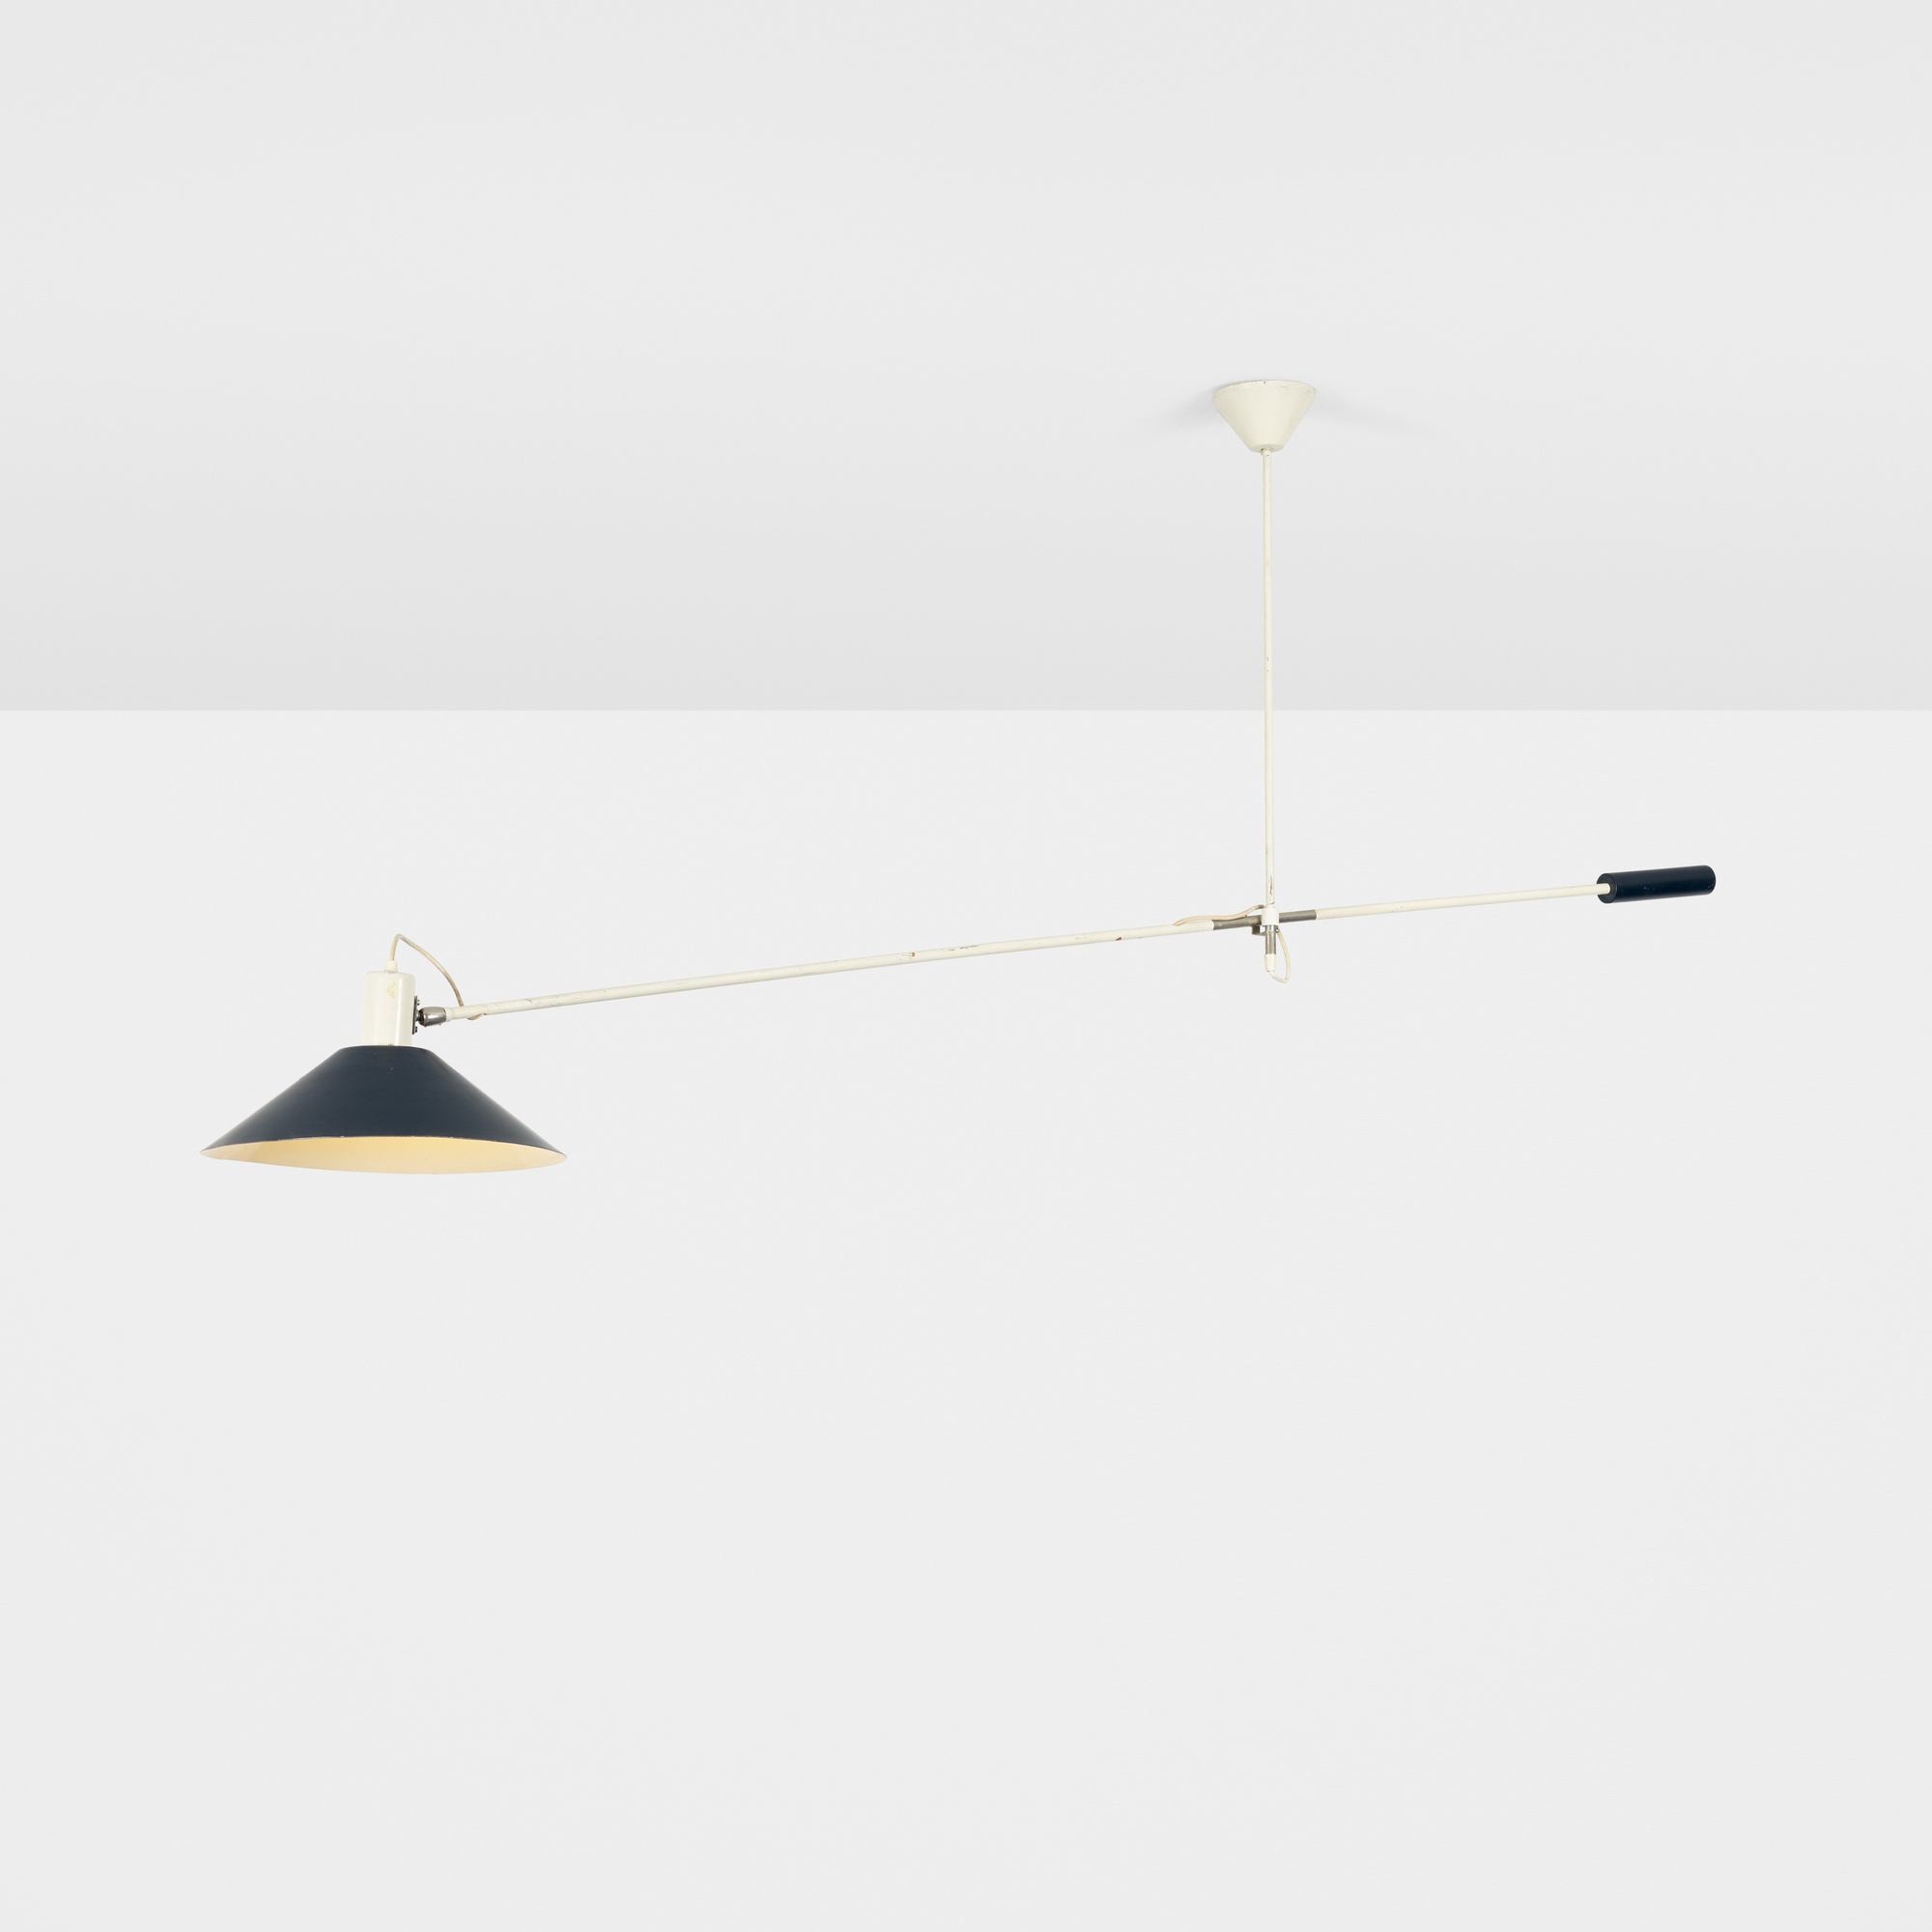 135: J.J.M. Hoogervorst / ceiling lamp (1 of 1)